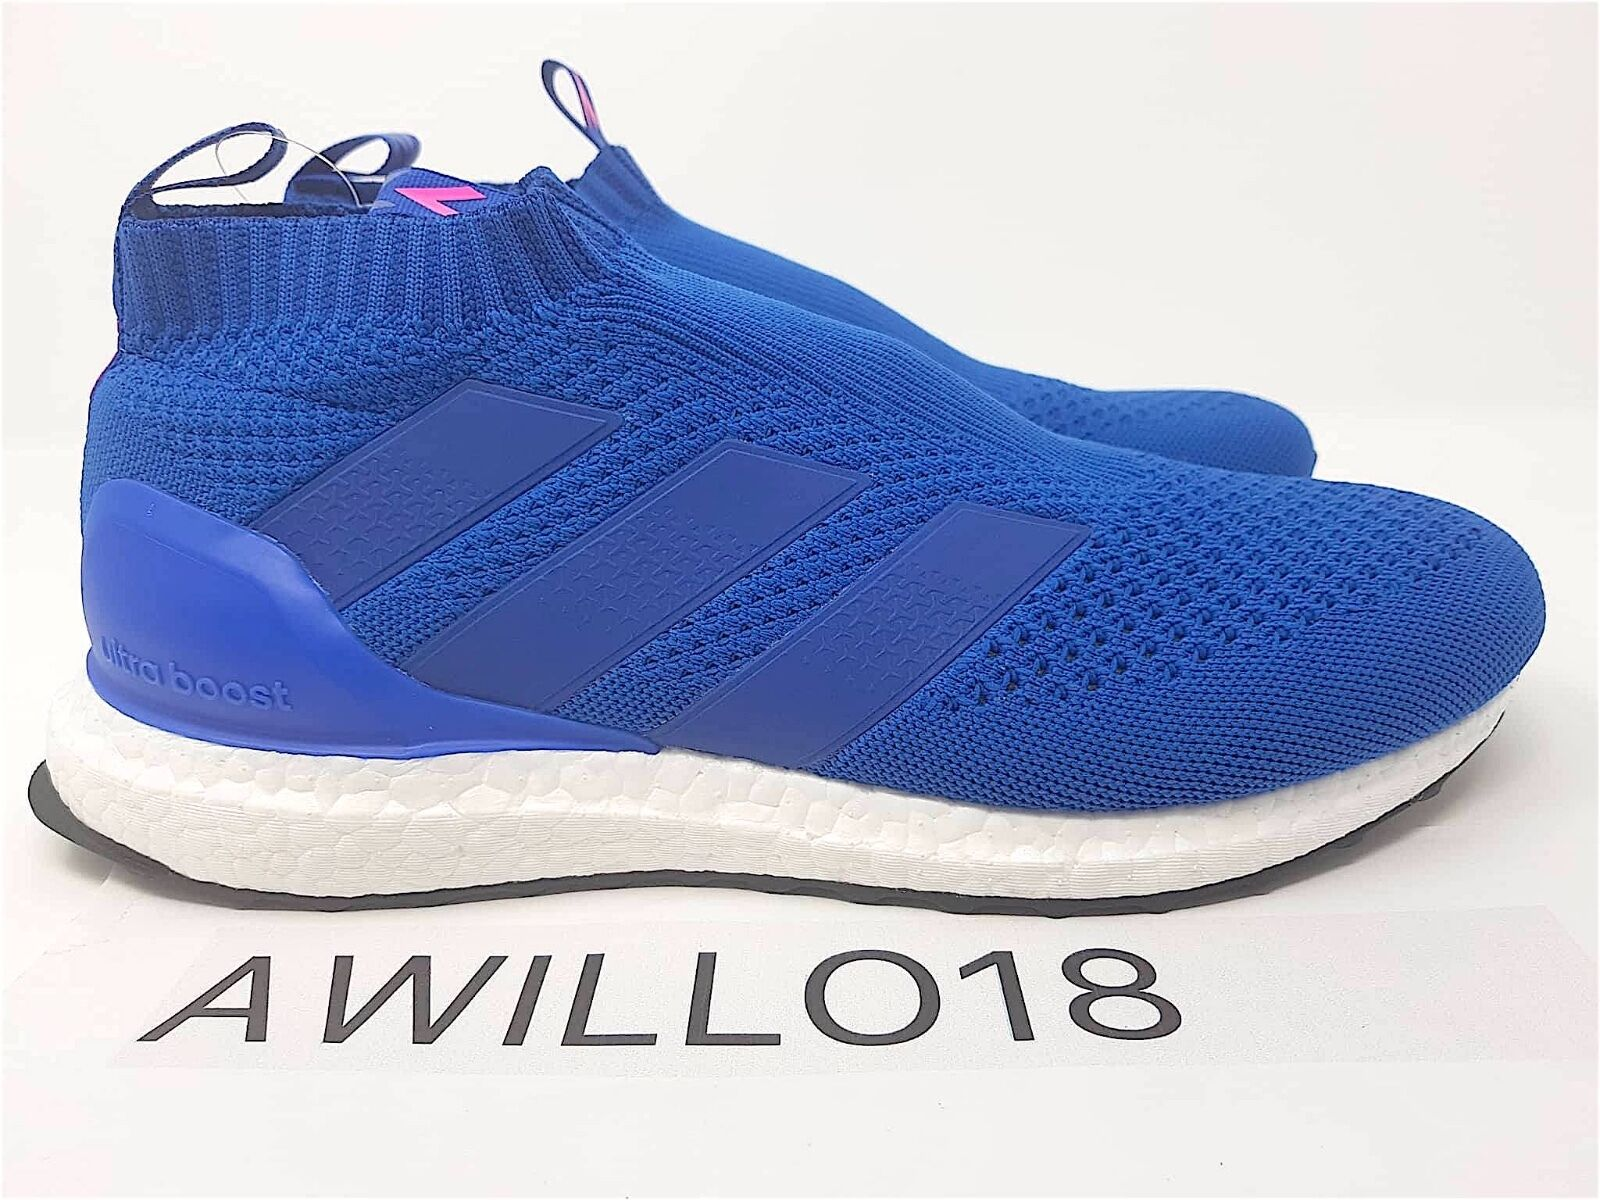 Adidas ace 17 + + 17 purecontrol ultra impulso blue blast shock rosa 10 10,5 16 + by9090 3ab2cb